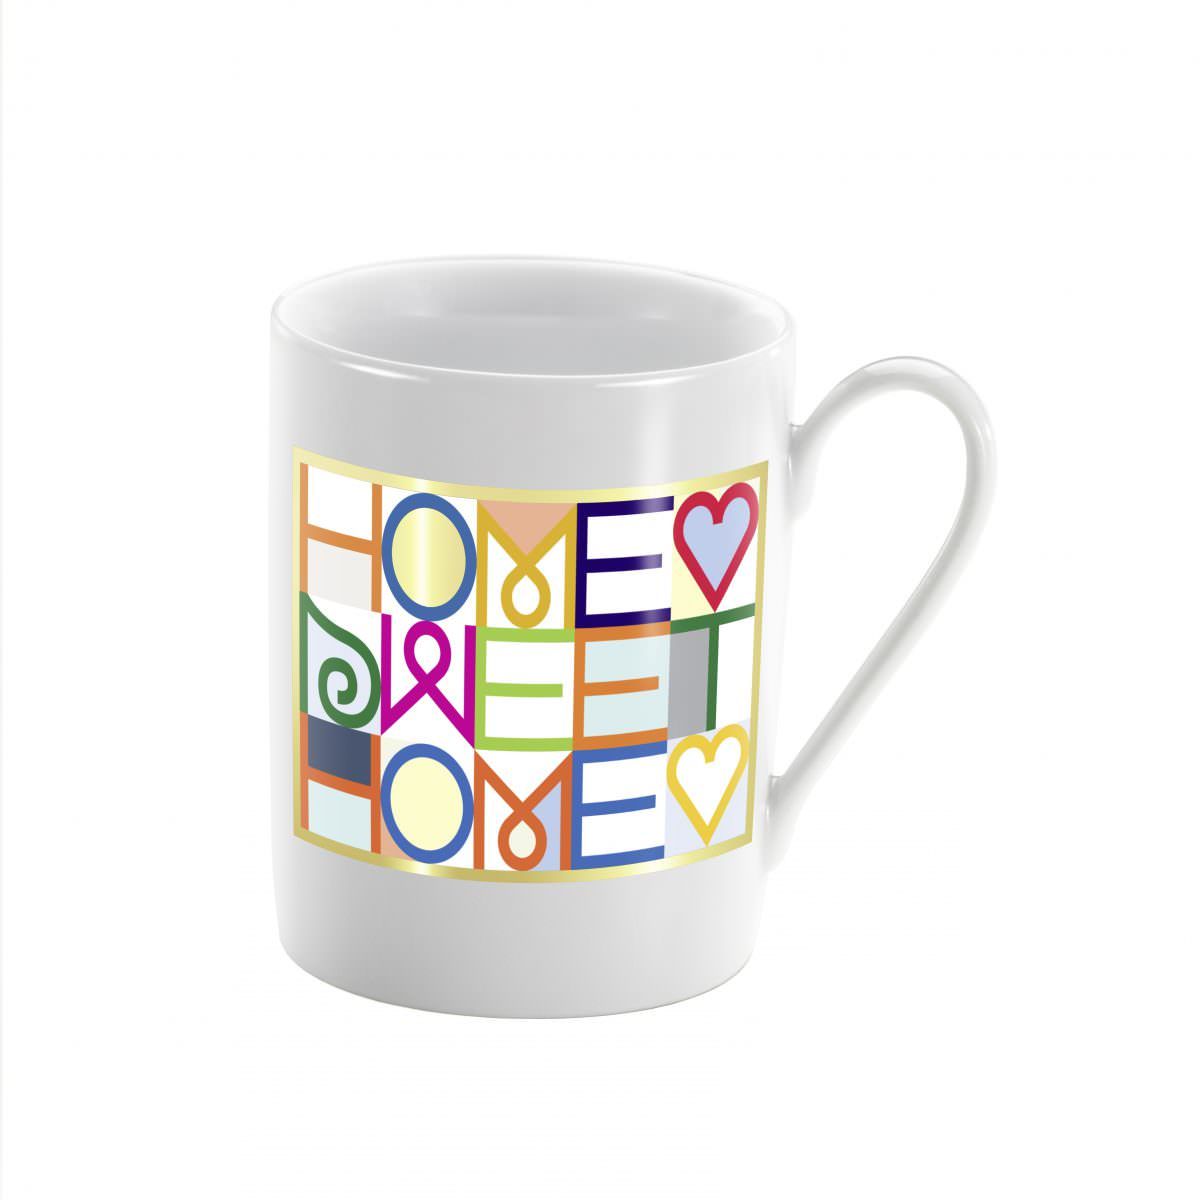 Home sweet home coffee mug design house norwich for Best coffee mugs for home